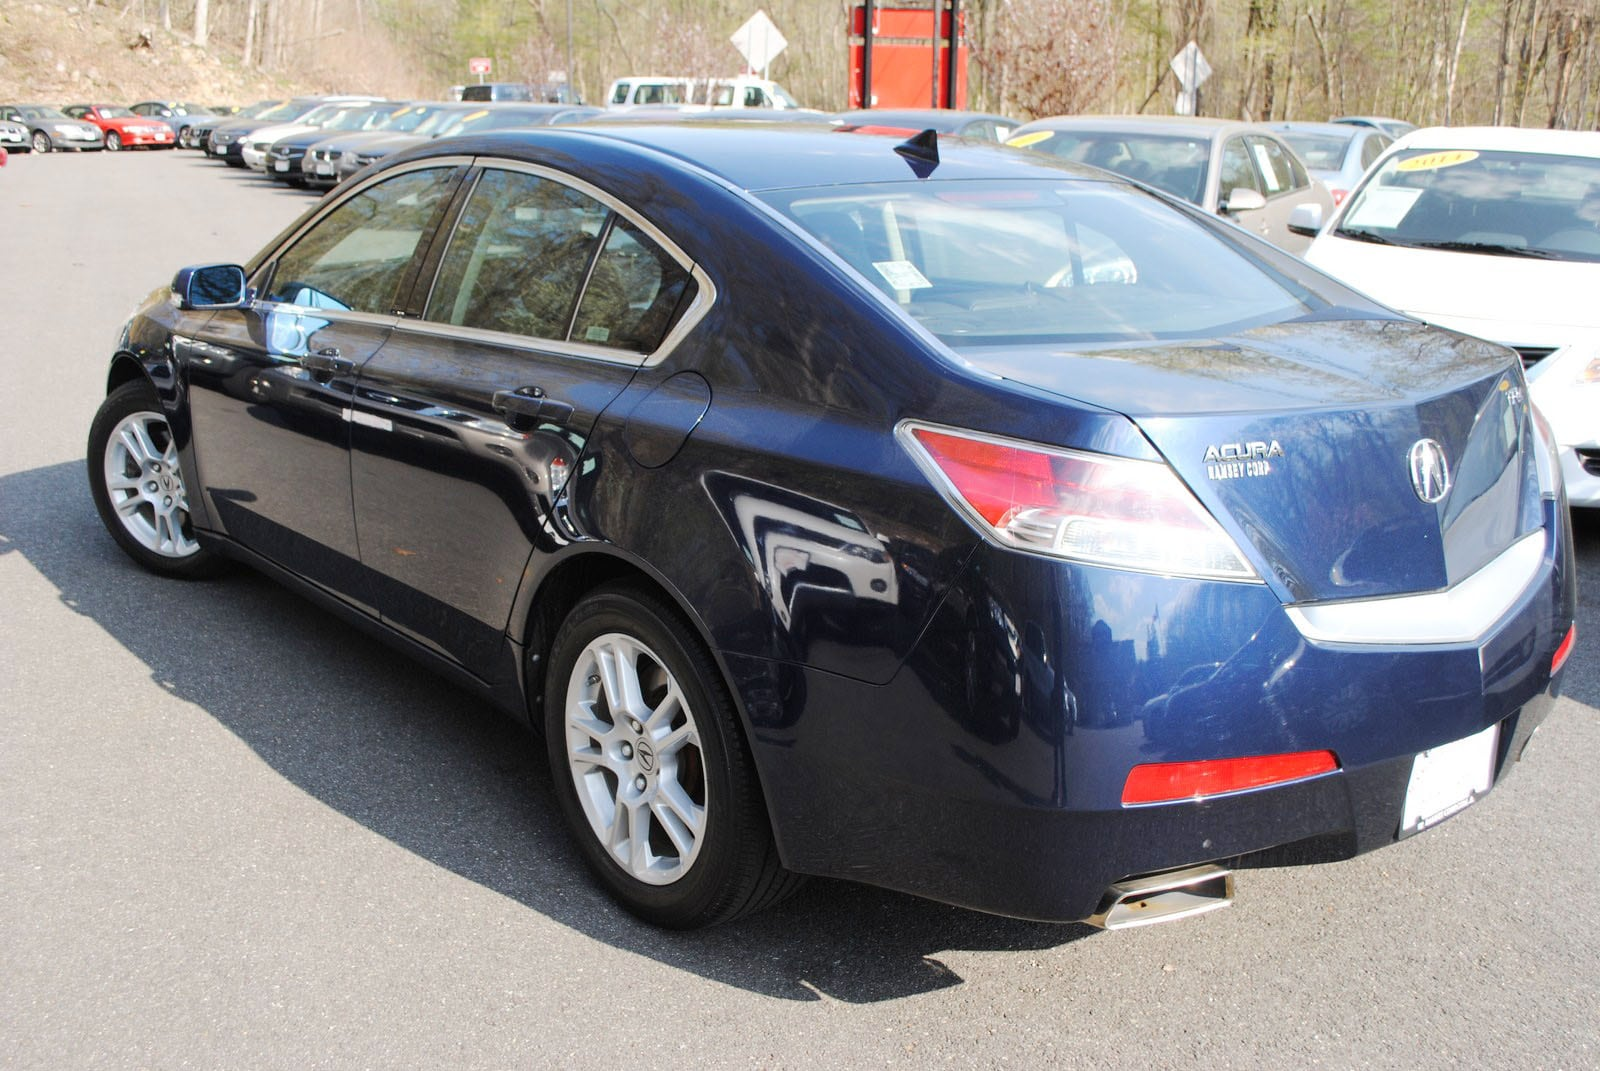 used 2009 acura tl for sale west milford nj rh ramseycorp com 2007 Acura TL Used 2009 Acura TL